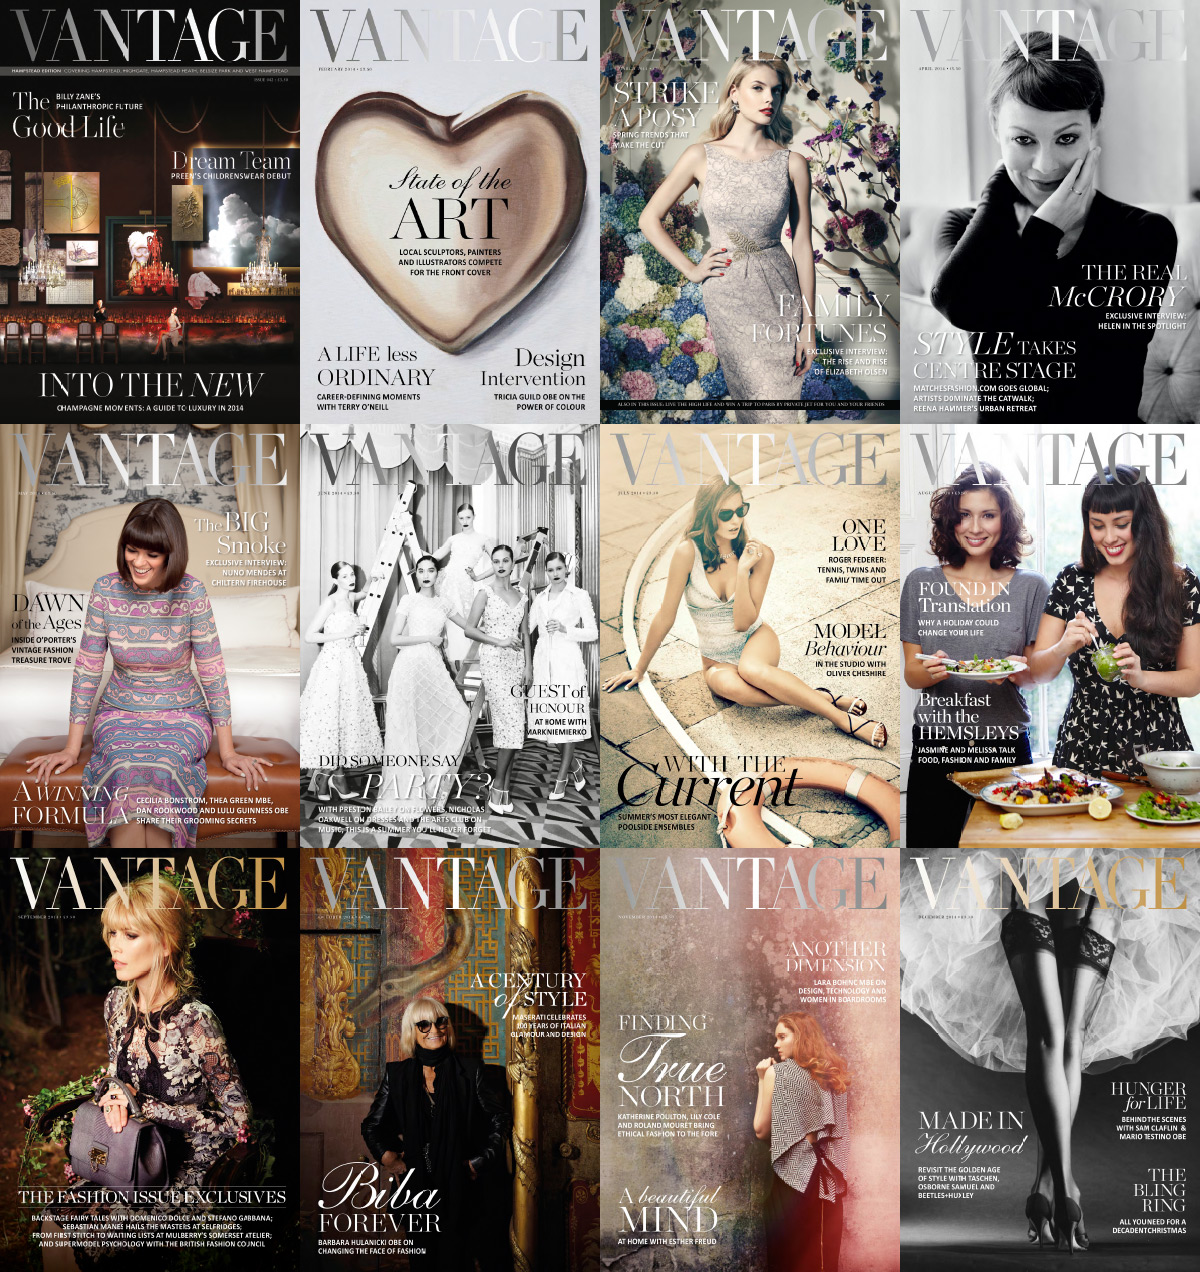 Vantage Magazine 2014 Full Year Collection free download